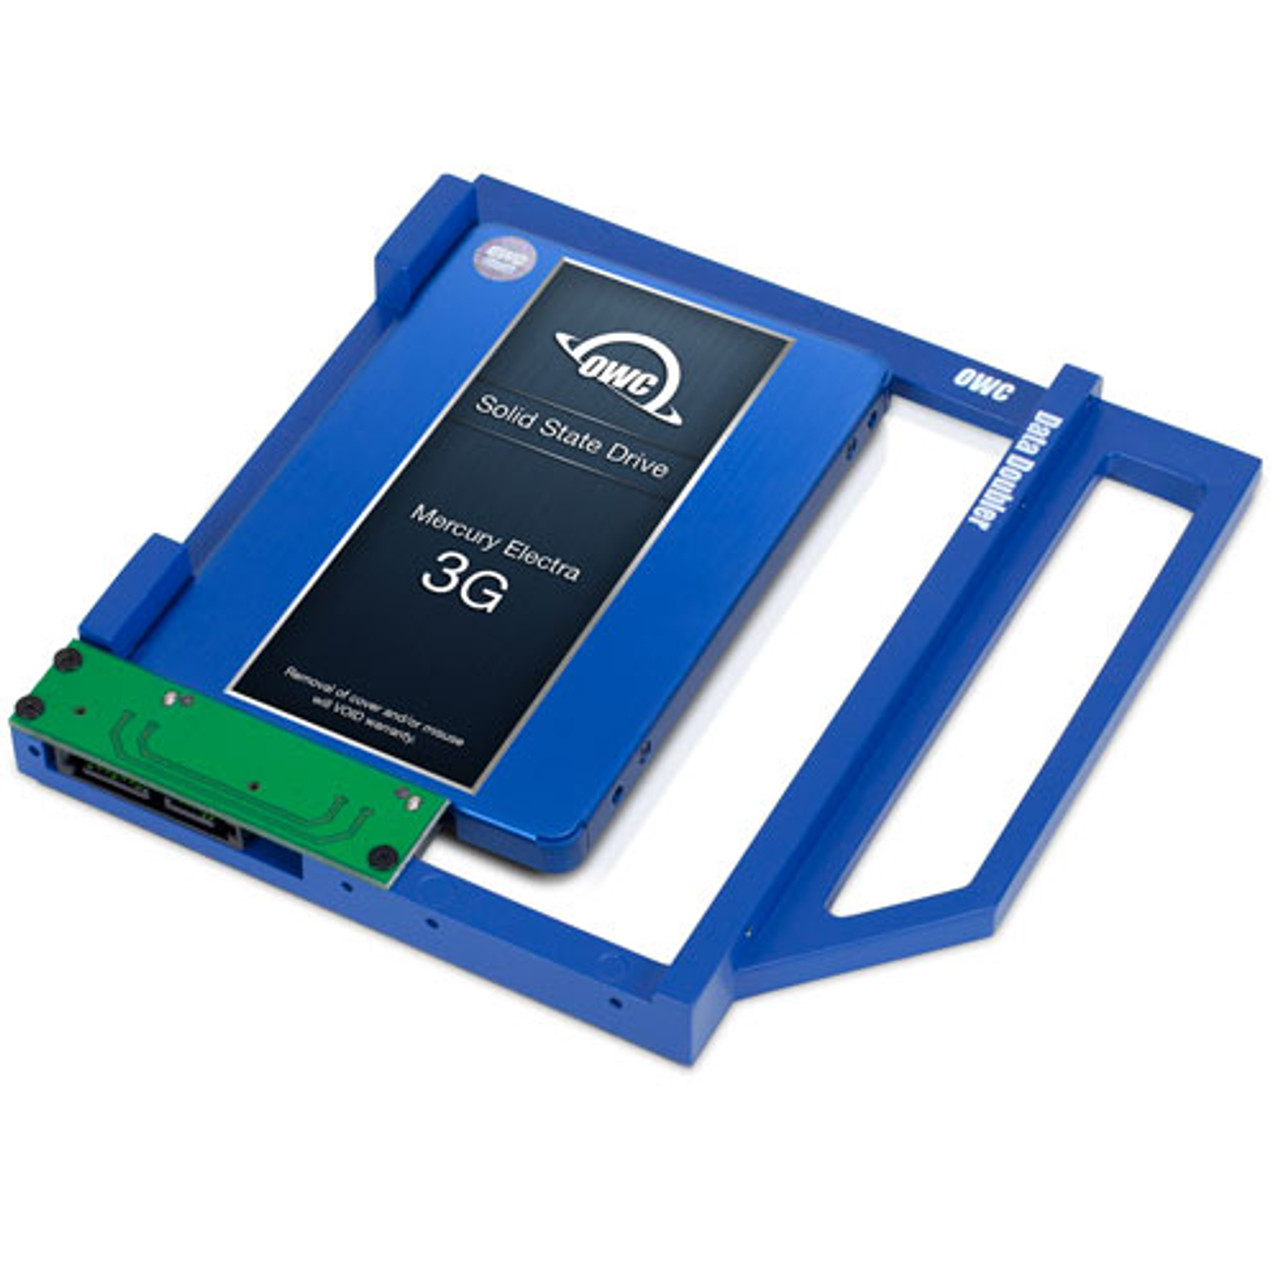 1TB OWC Mercury Electra 3G SSD and Data Doubler (DVD drive to SSD replacement) for select 2009- 2011 21.5-inch iMacs